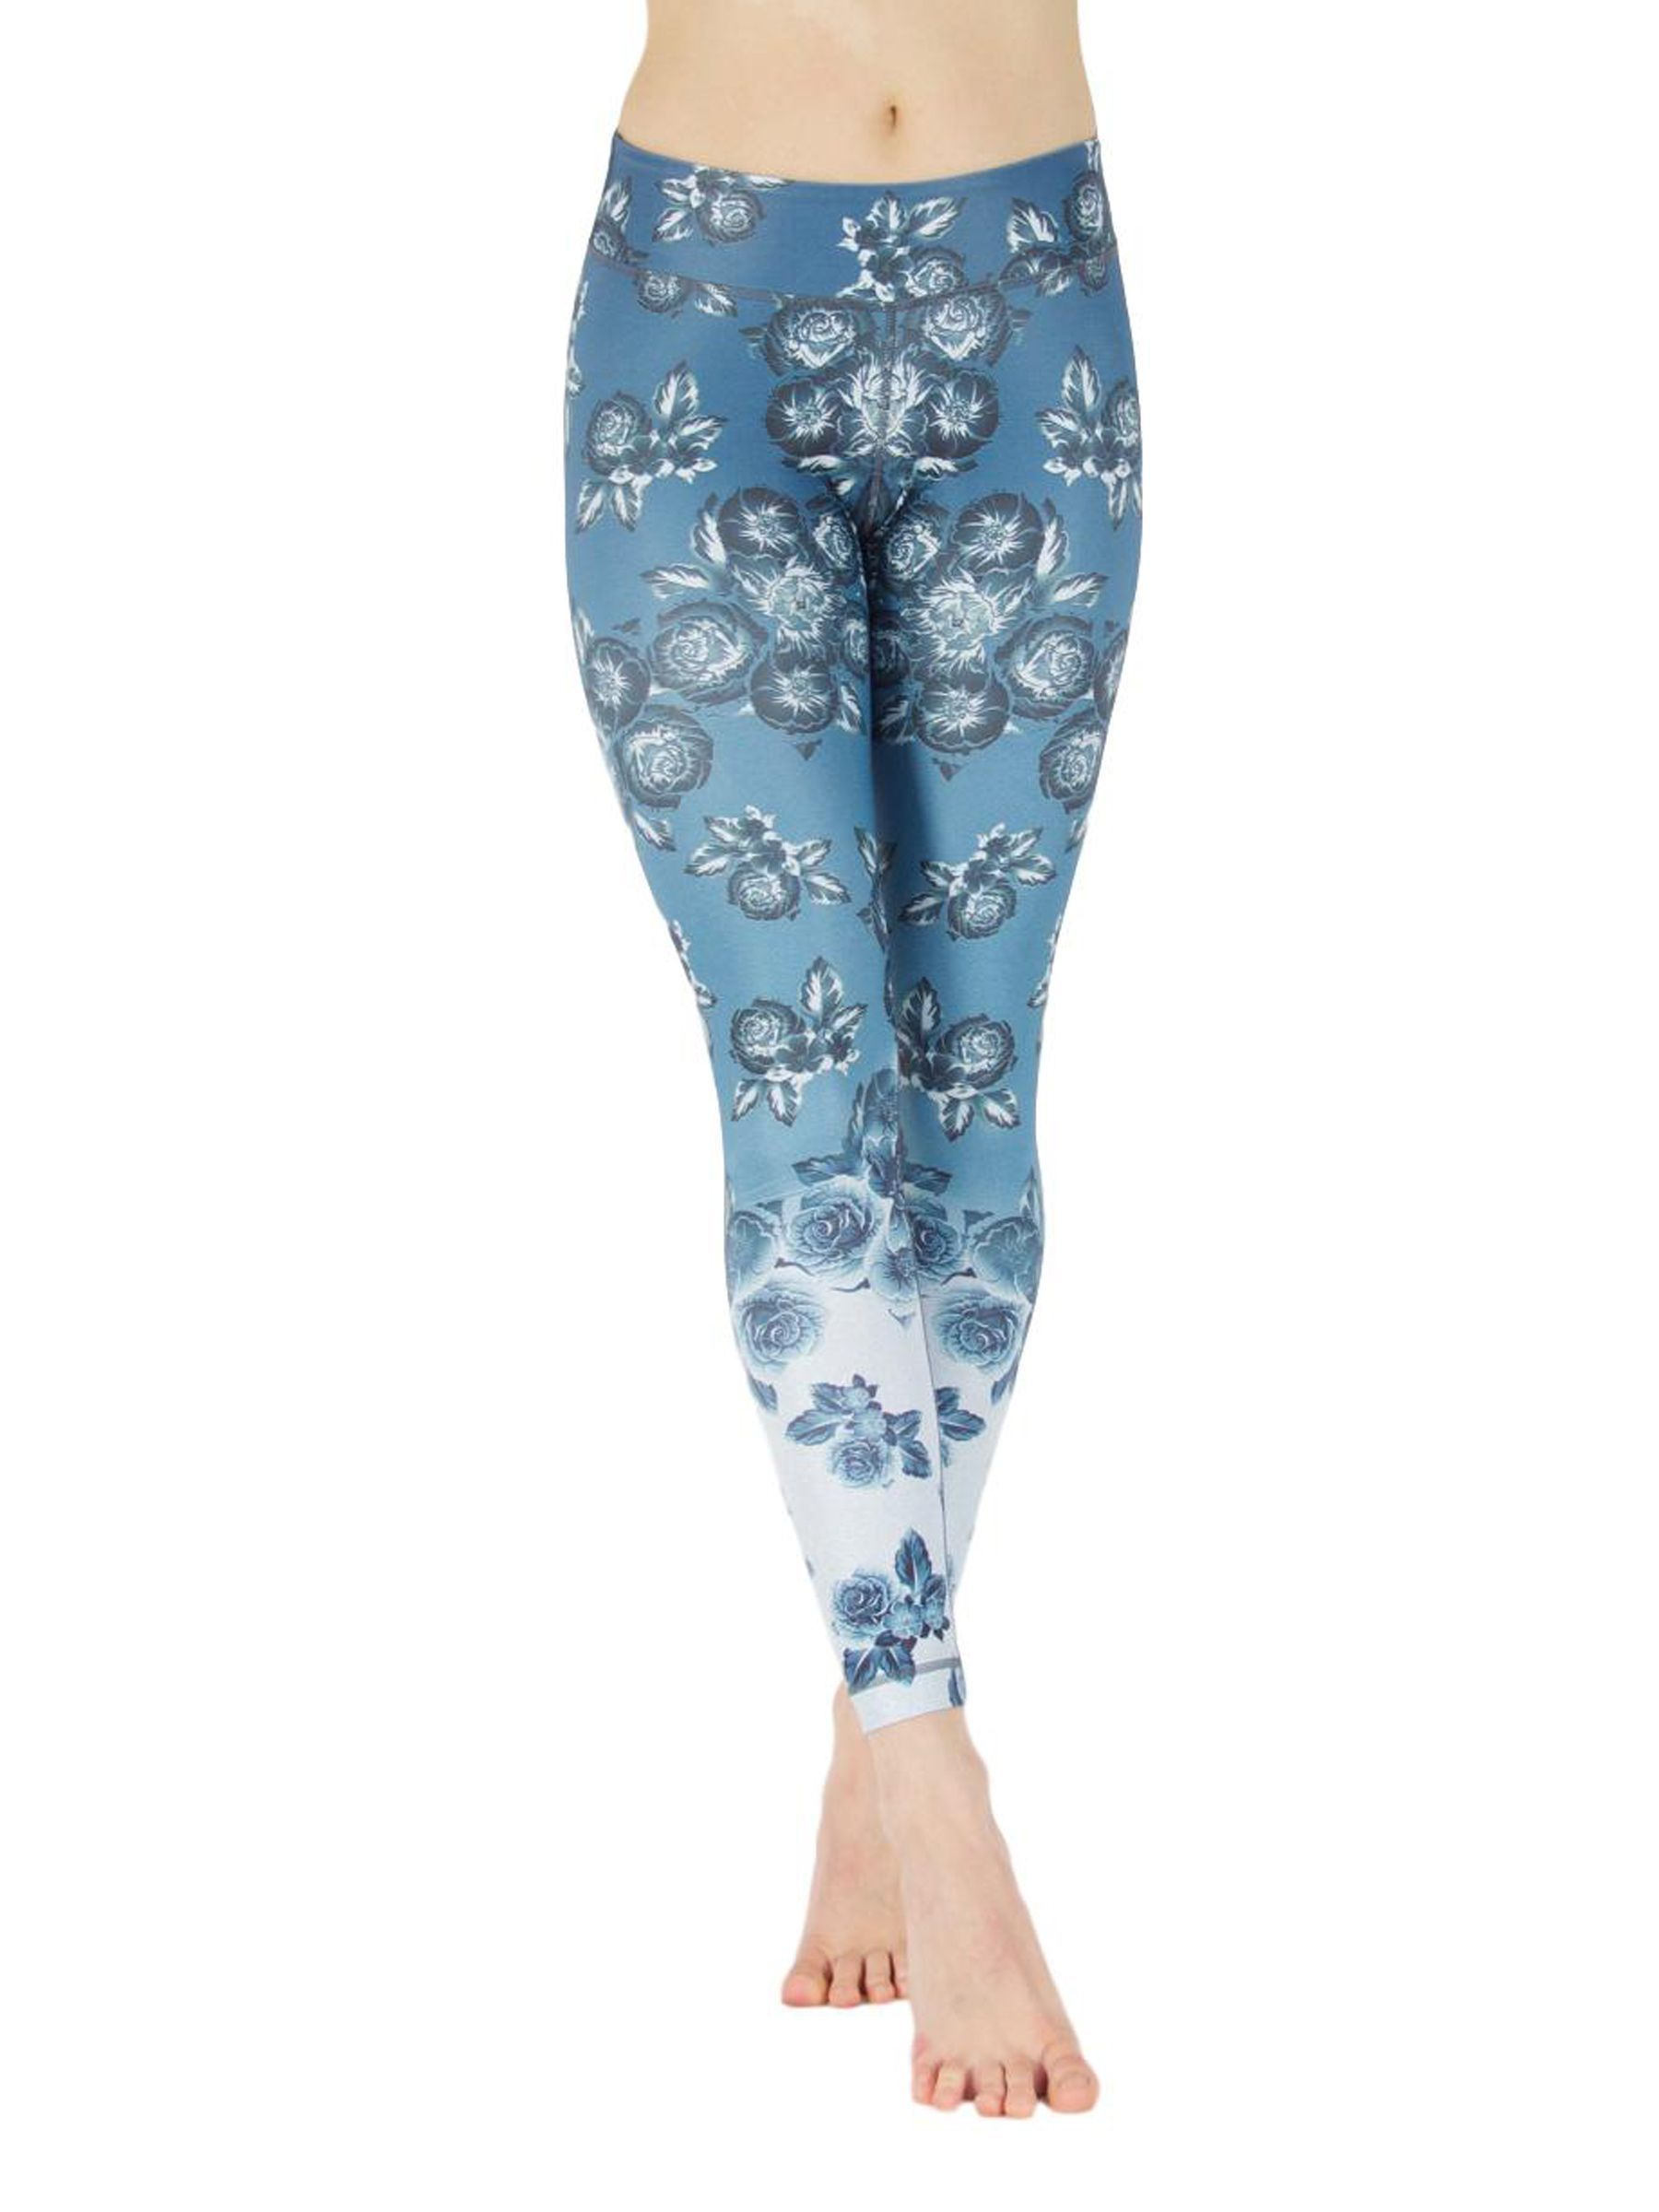 Lilly of the Valley Leggings - Yoga Pants For the Free Spirited.